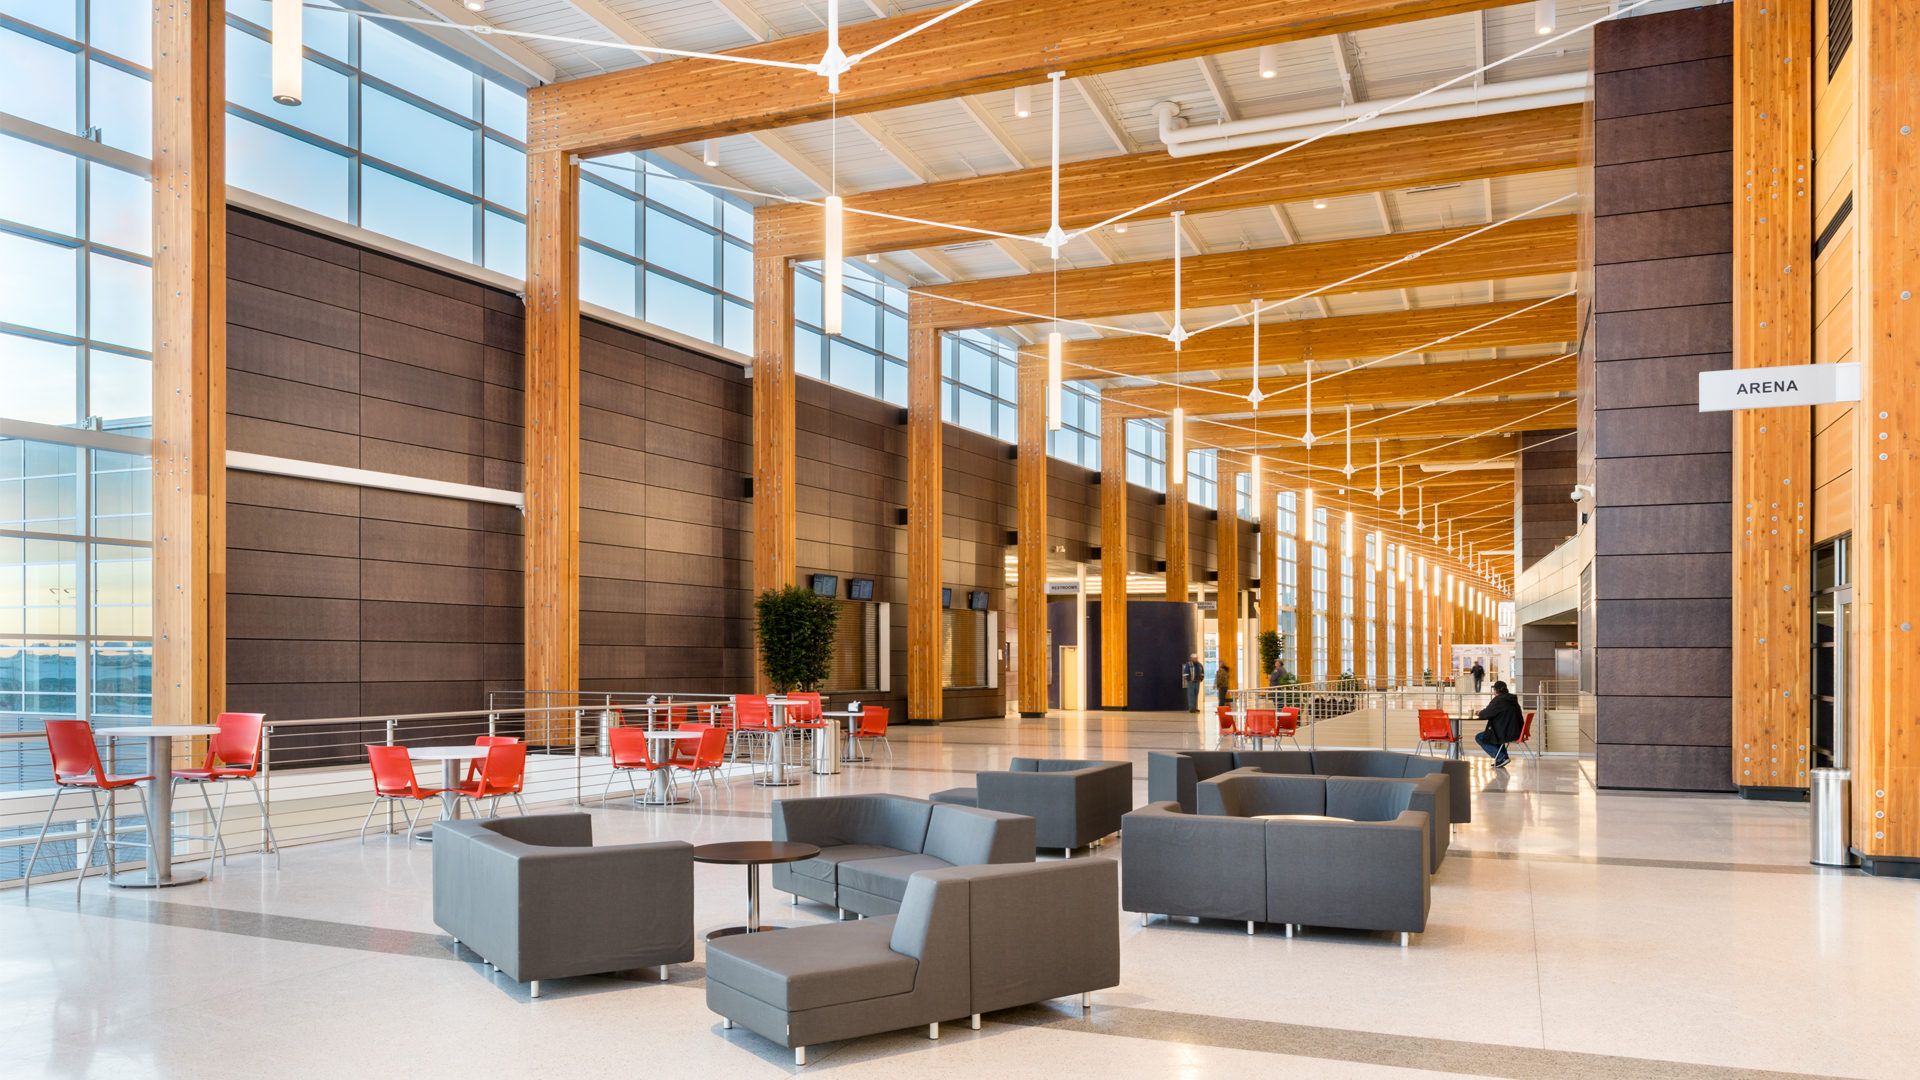 Watford Event Center Watford ND Government Vaulted Ceiling Open Corridor Seating Area